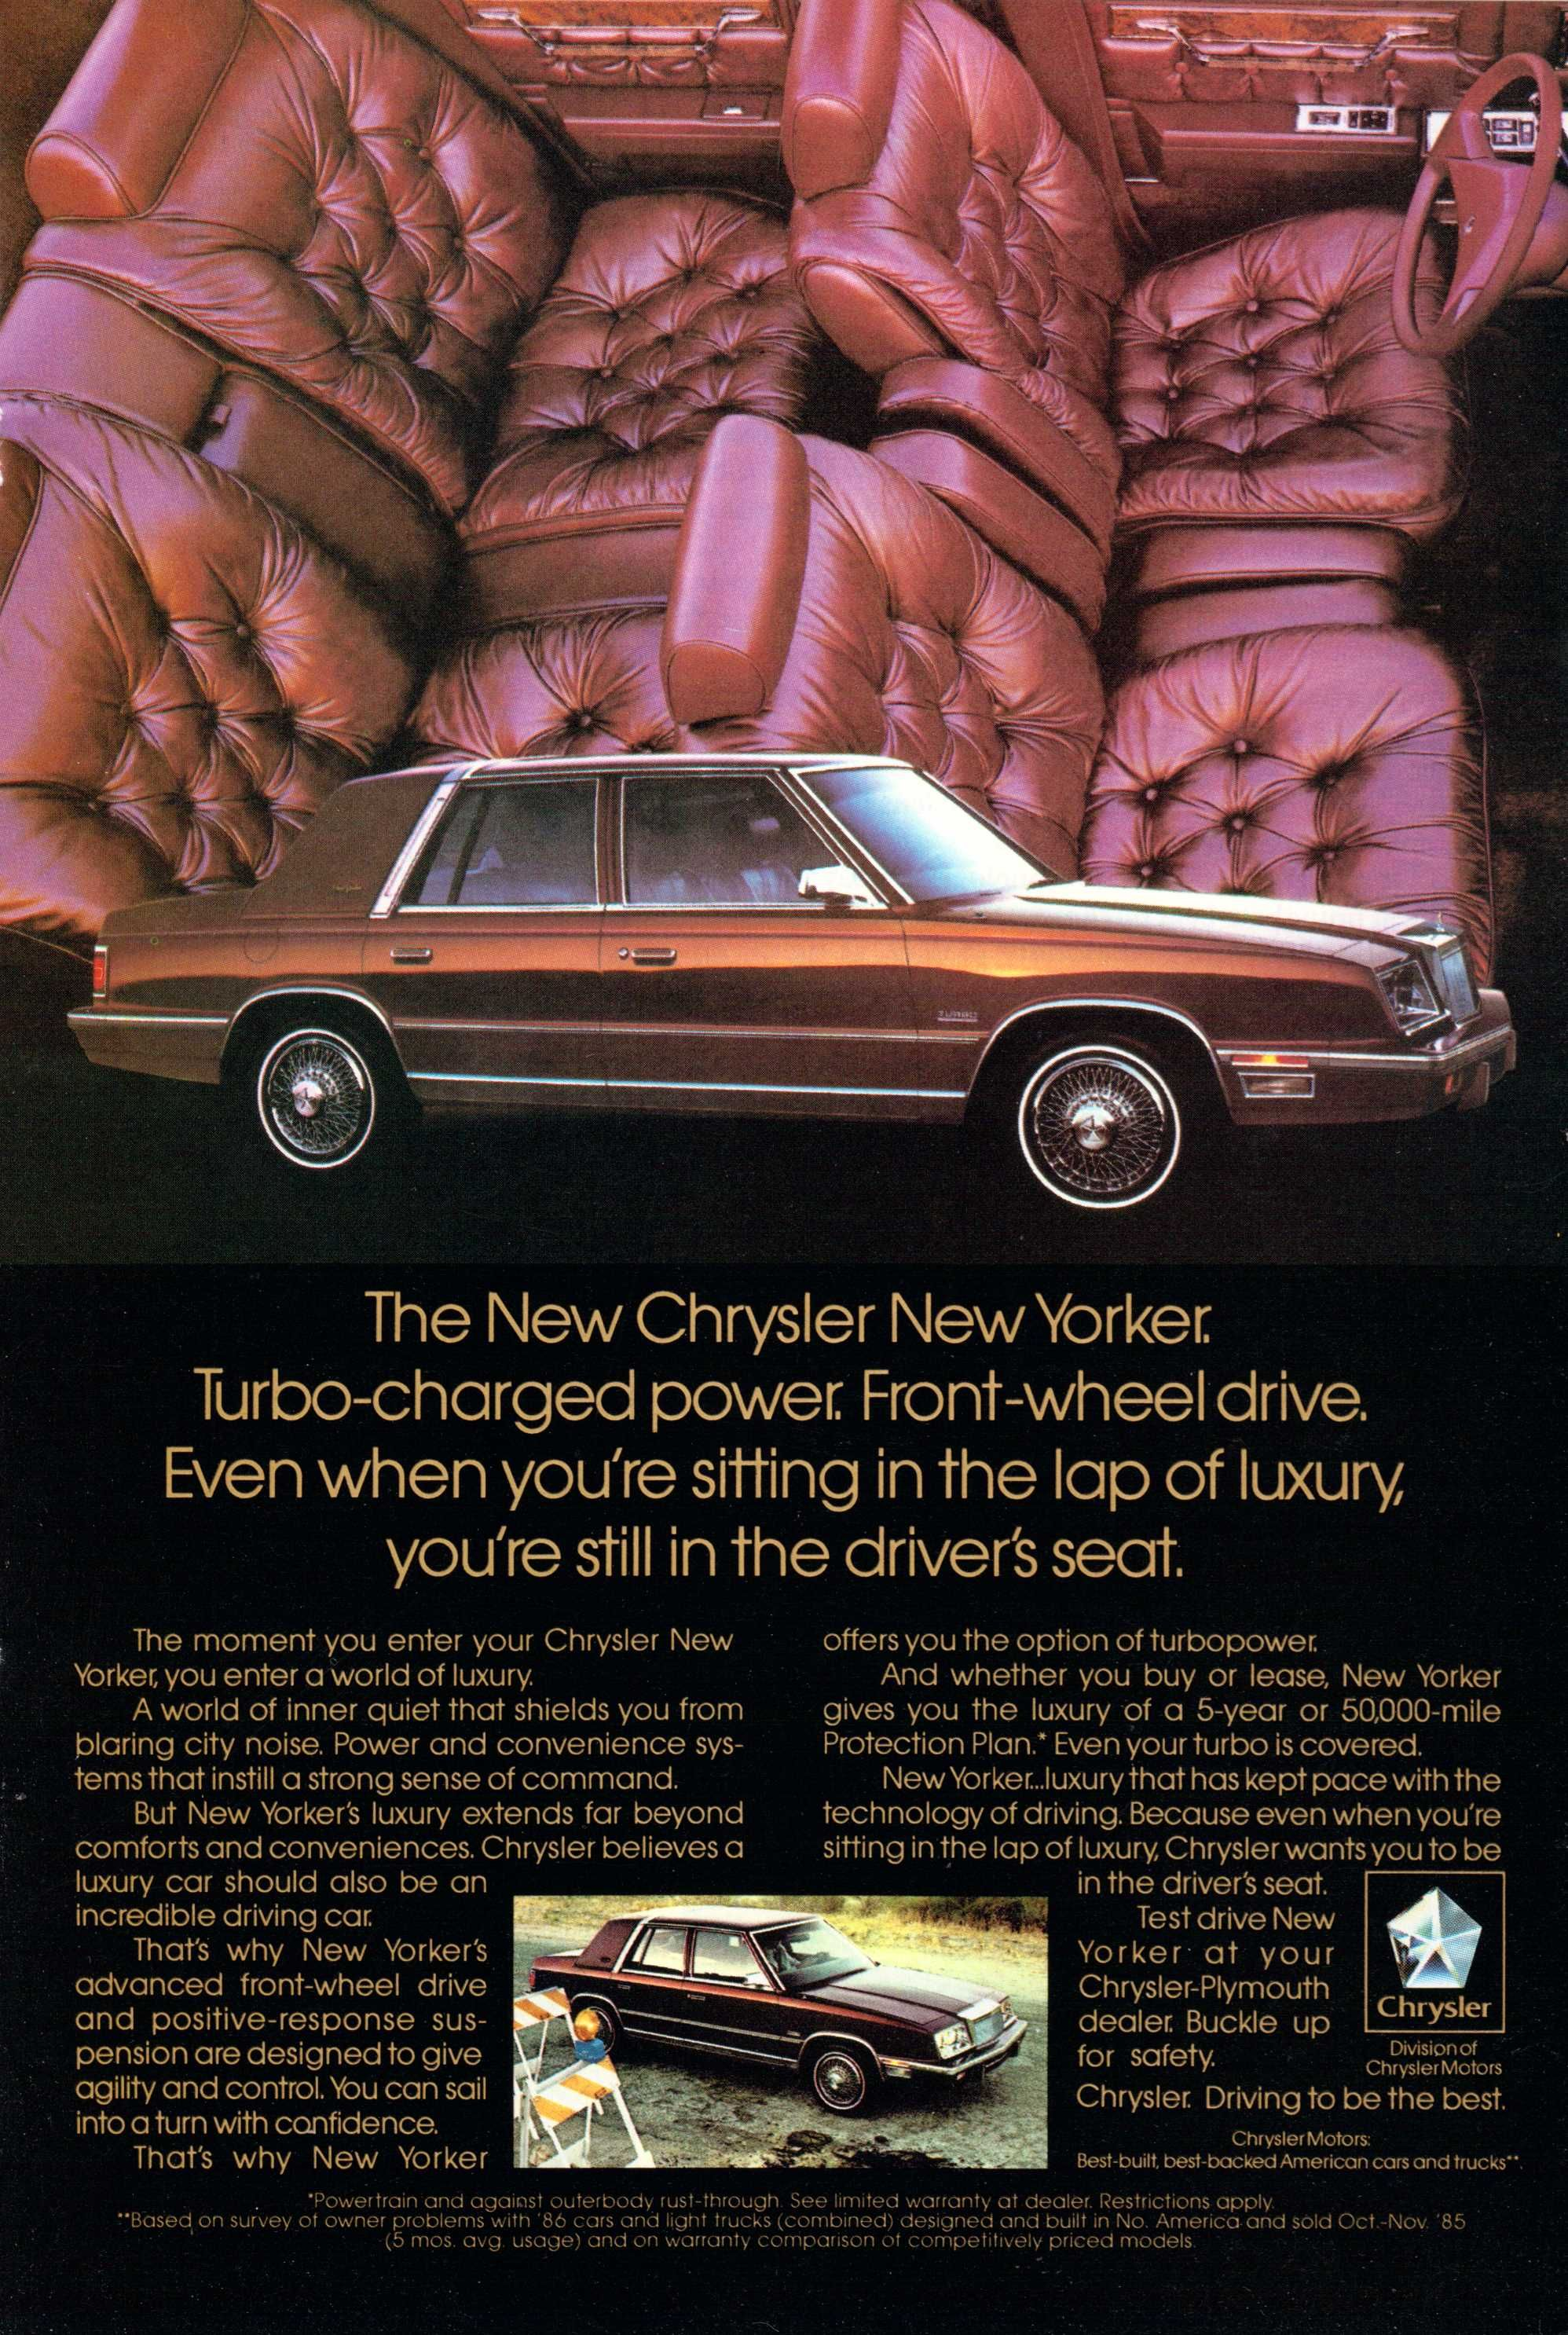 1986 Chrysler New Yorker Ad From National Geographic November 1986 Chrysler Cars Chrysler New Yorker Chrysler